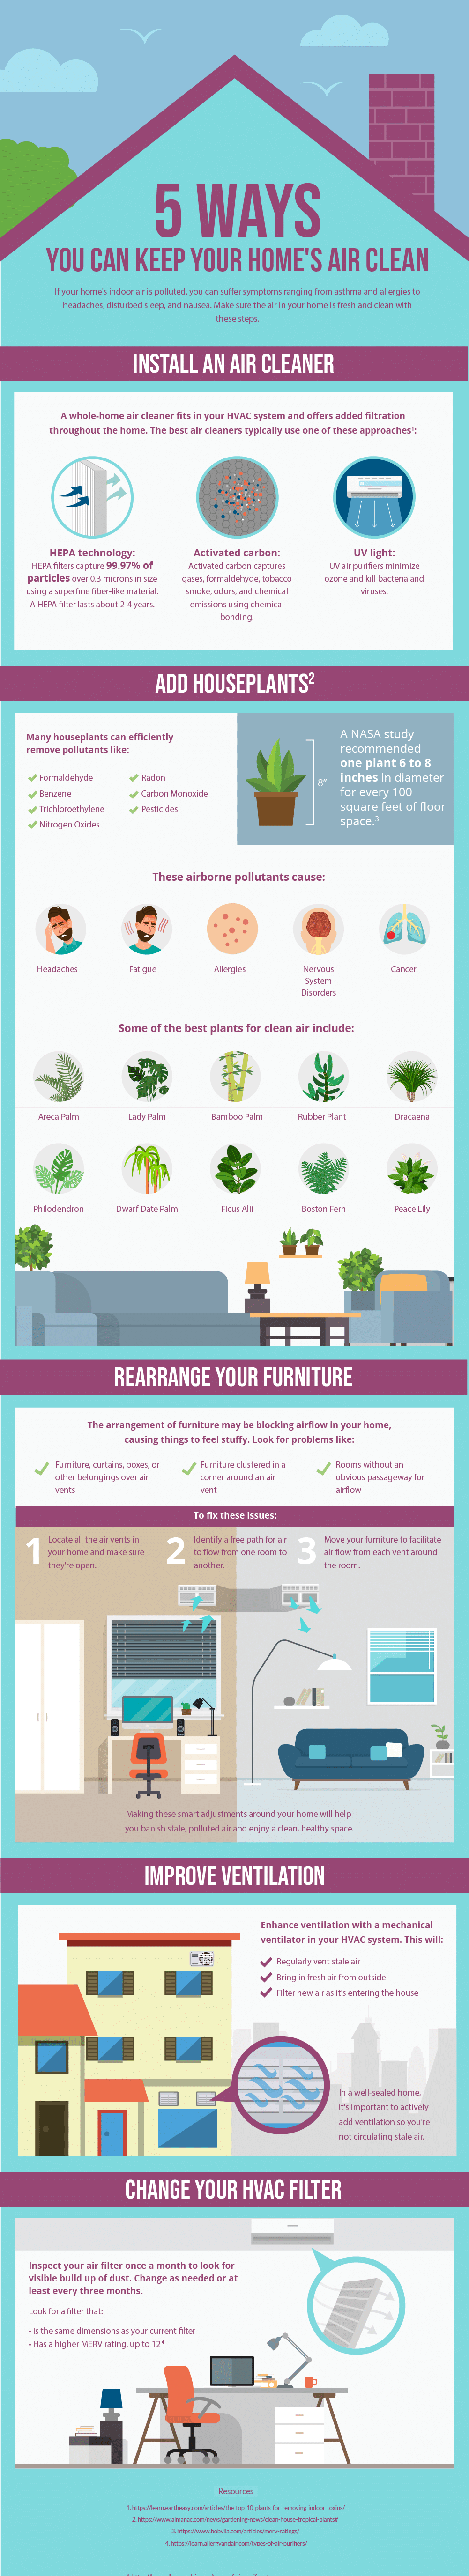 Keeping Your Home's Air Clean